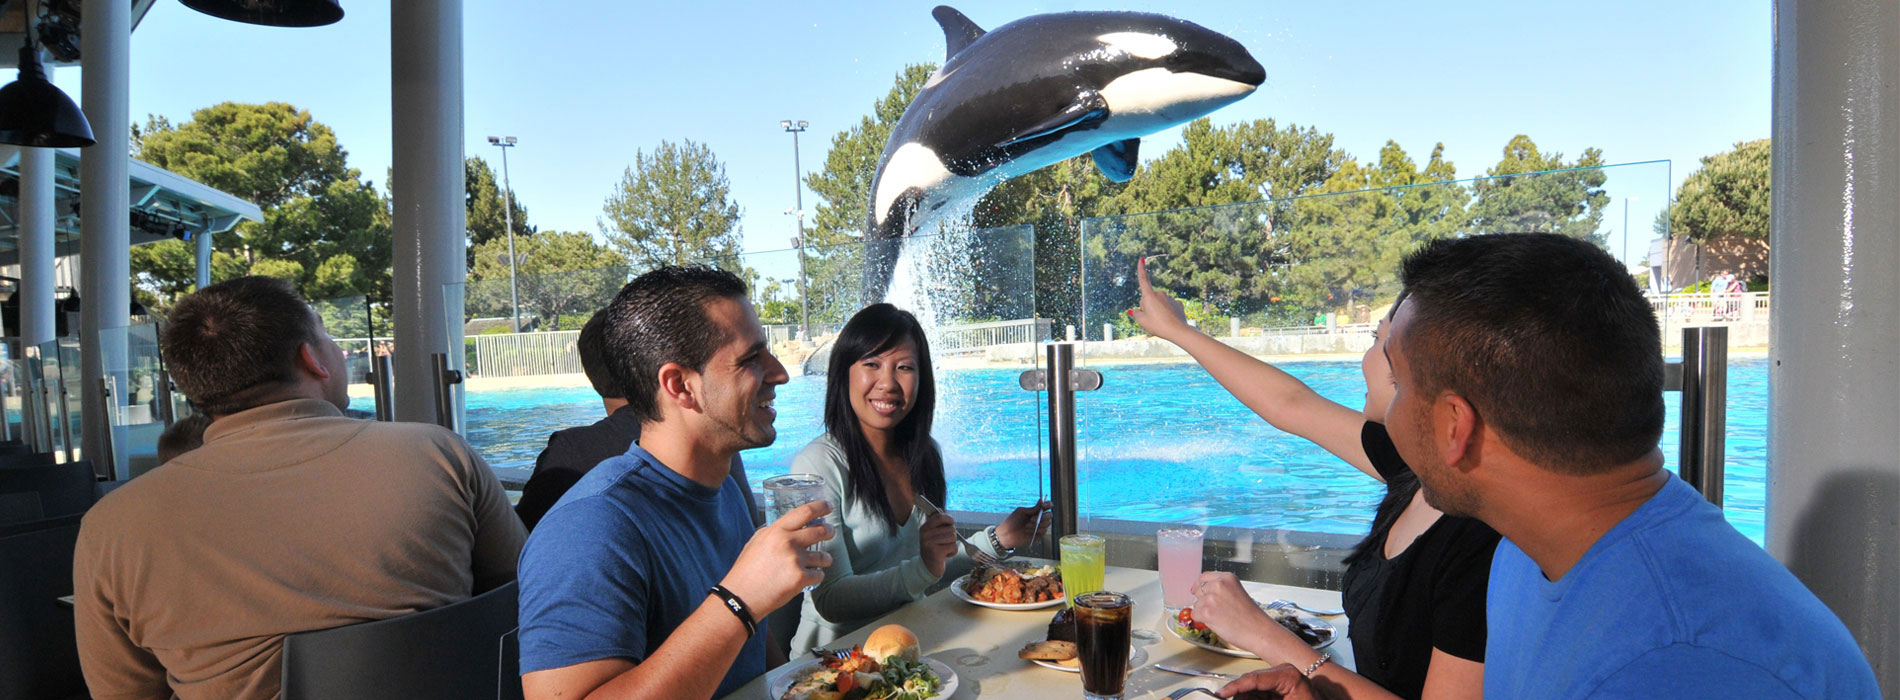 Enjoy a delicious buffet meal at Dine with Orcas.